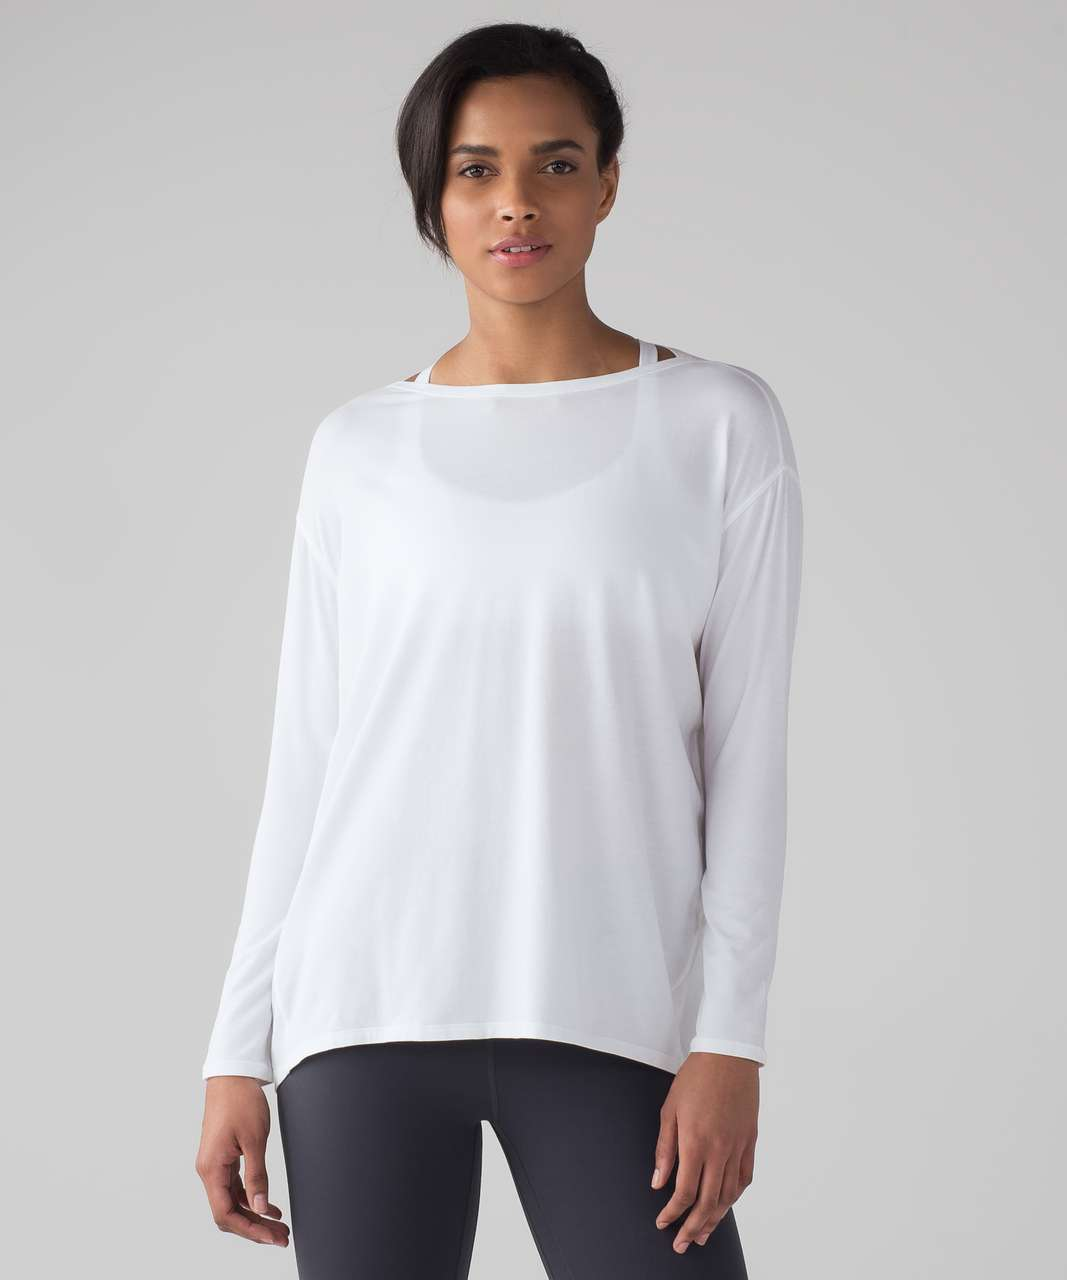 Lululemon Back In Action Long Sleeve - White (First Release)